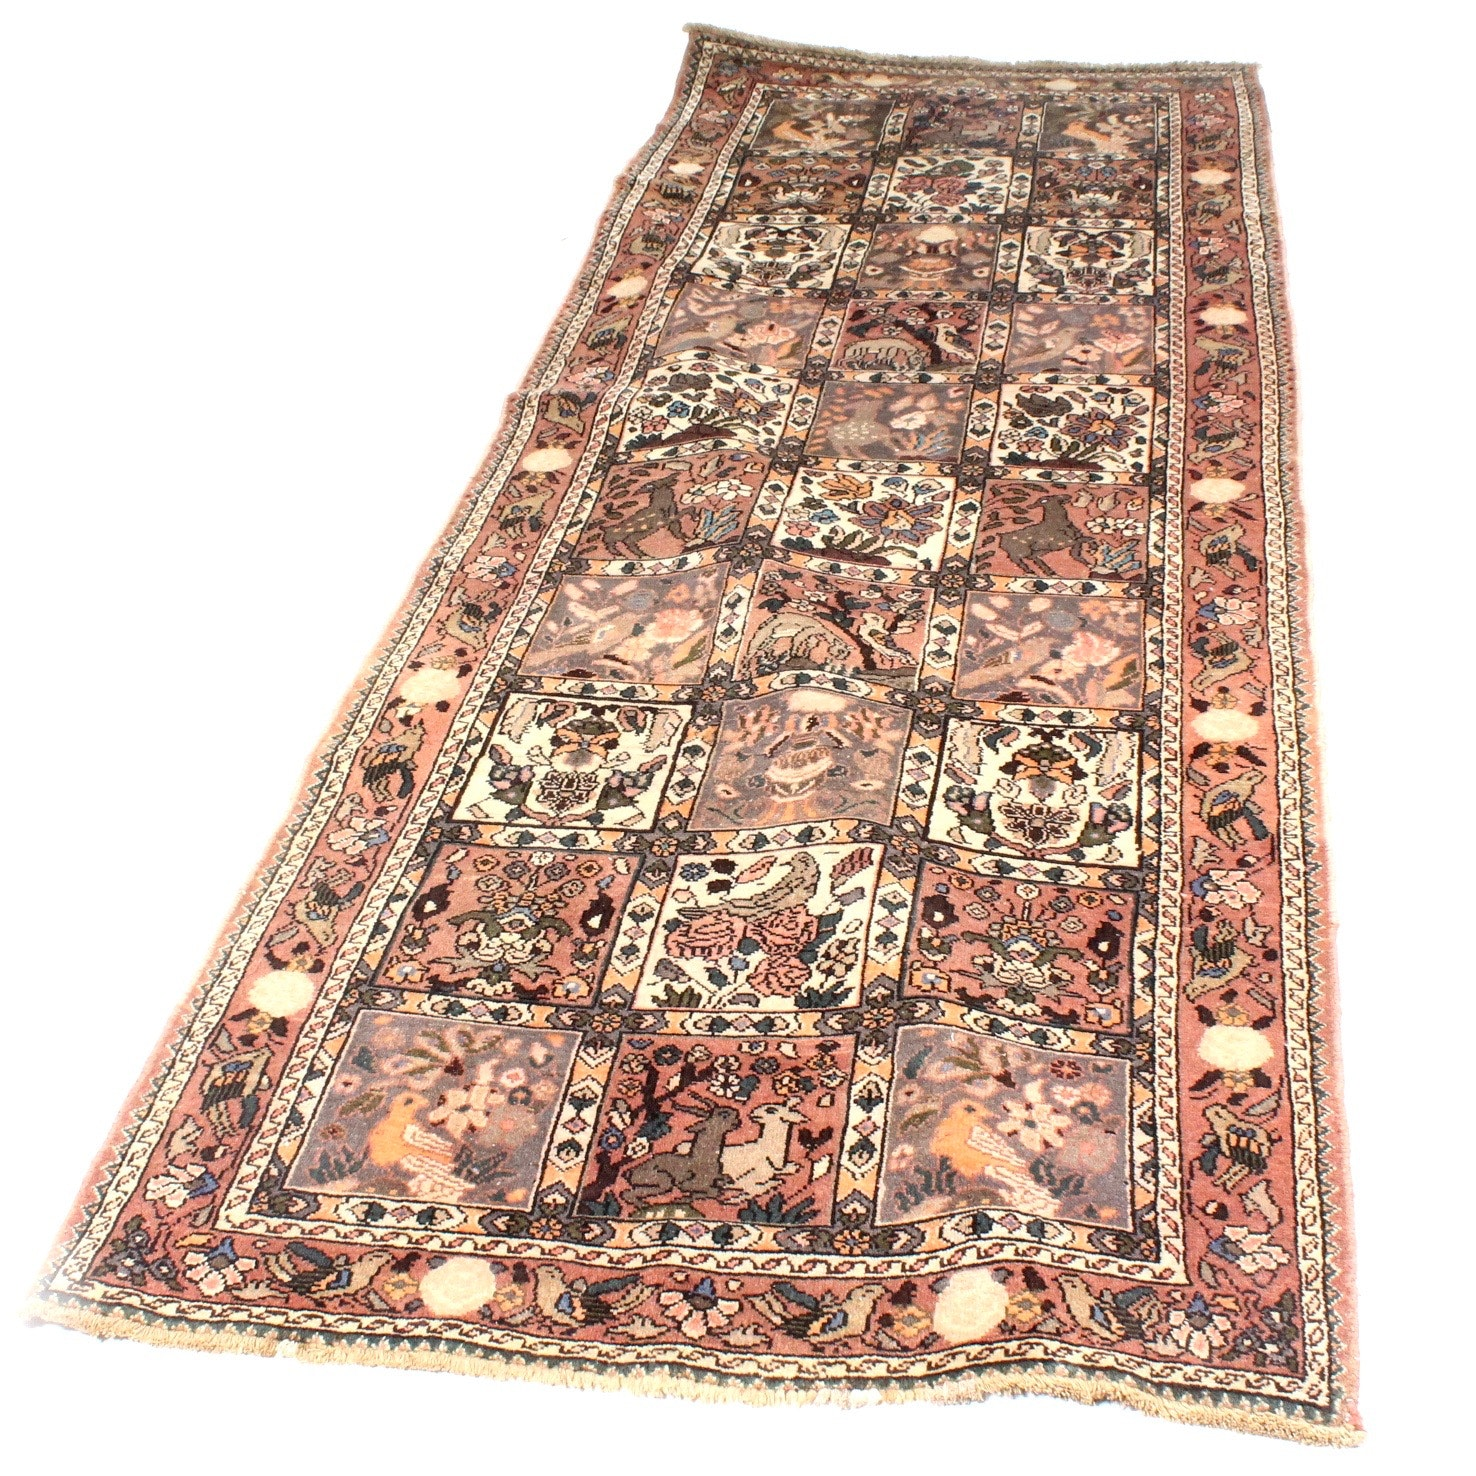 Vintage Hand-Knotted Persian Hunting Qum Rug Runner